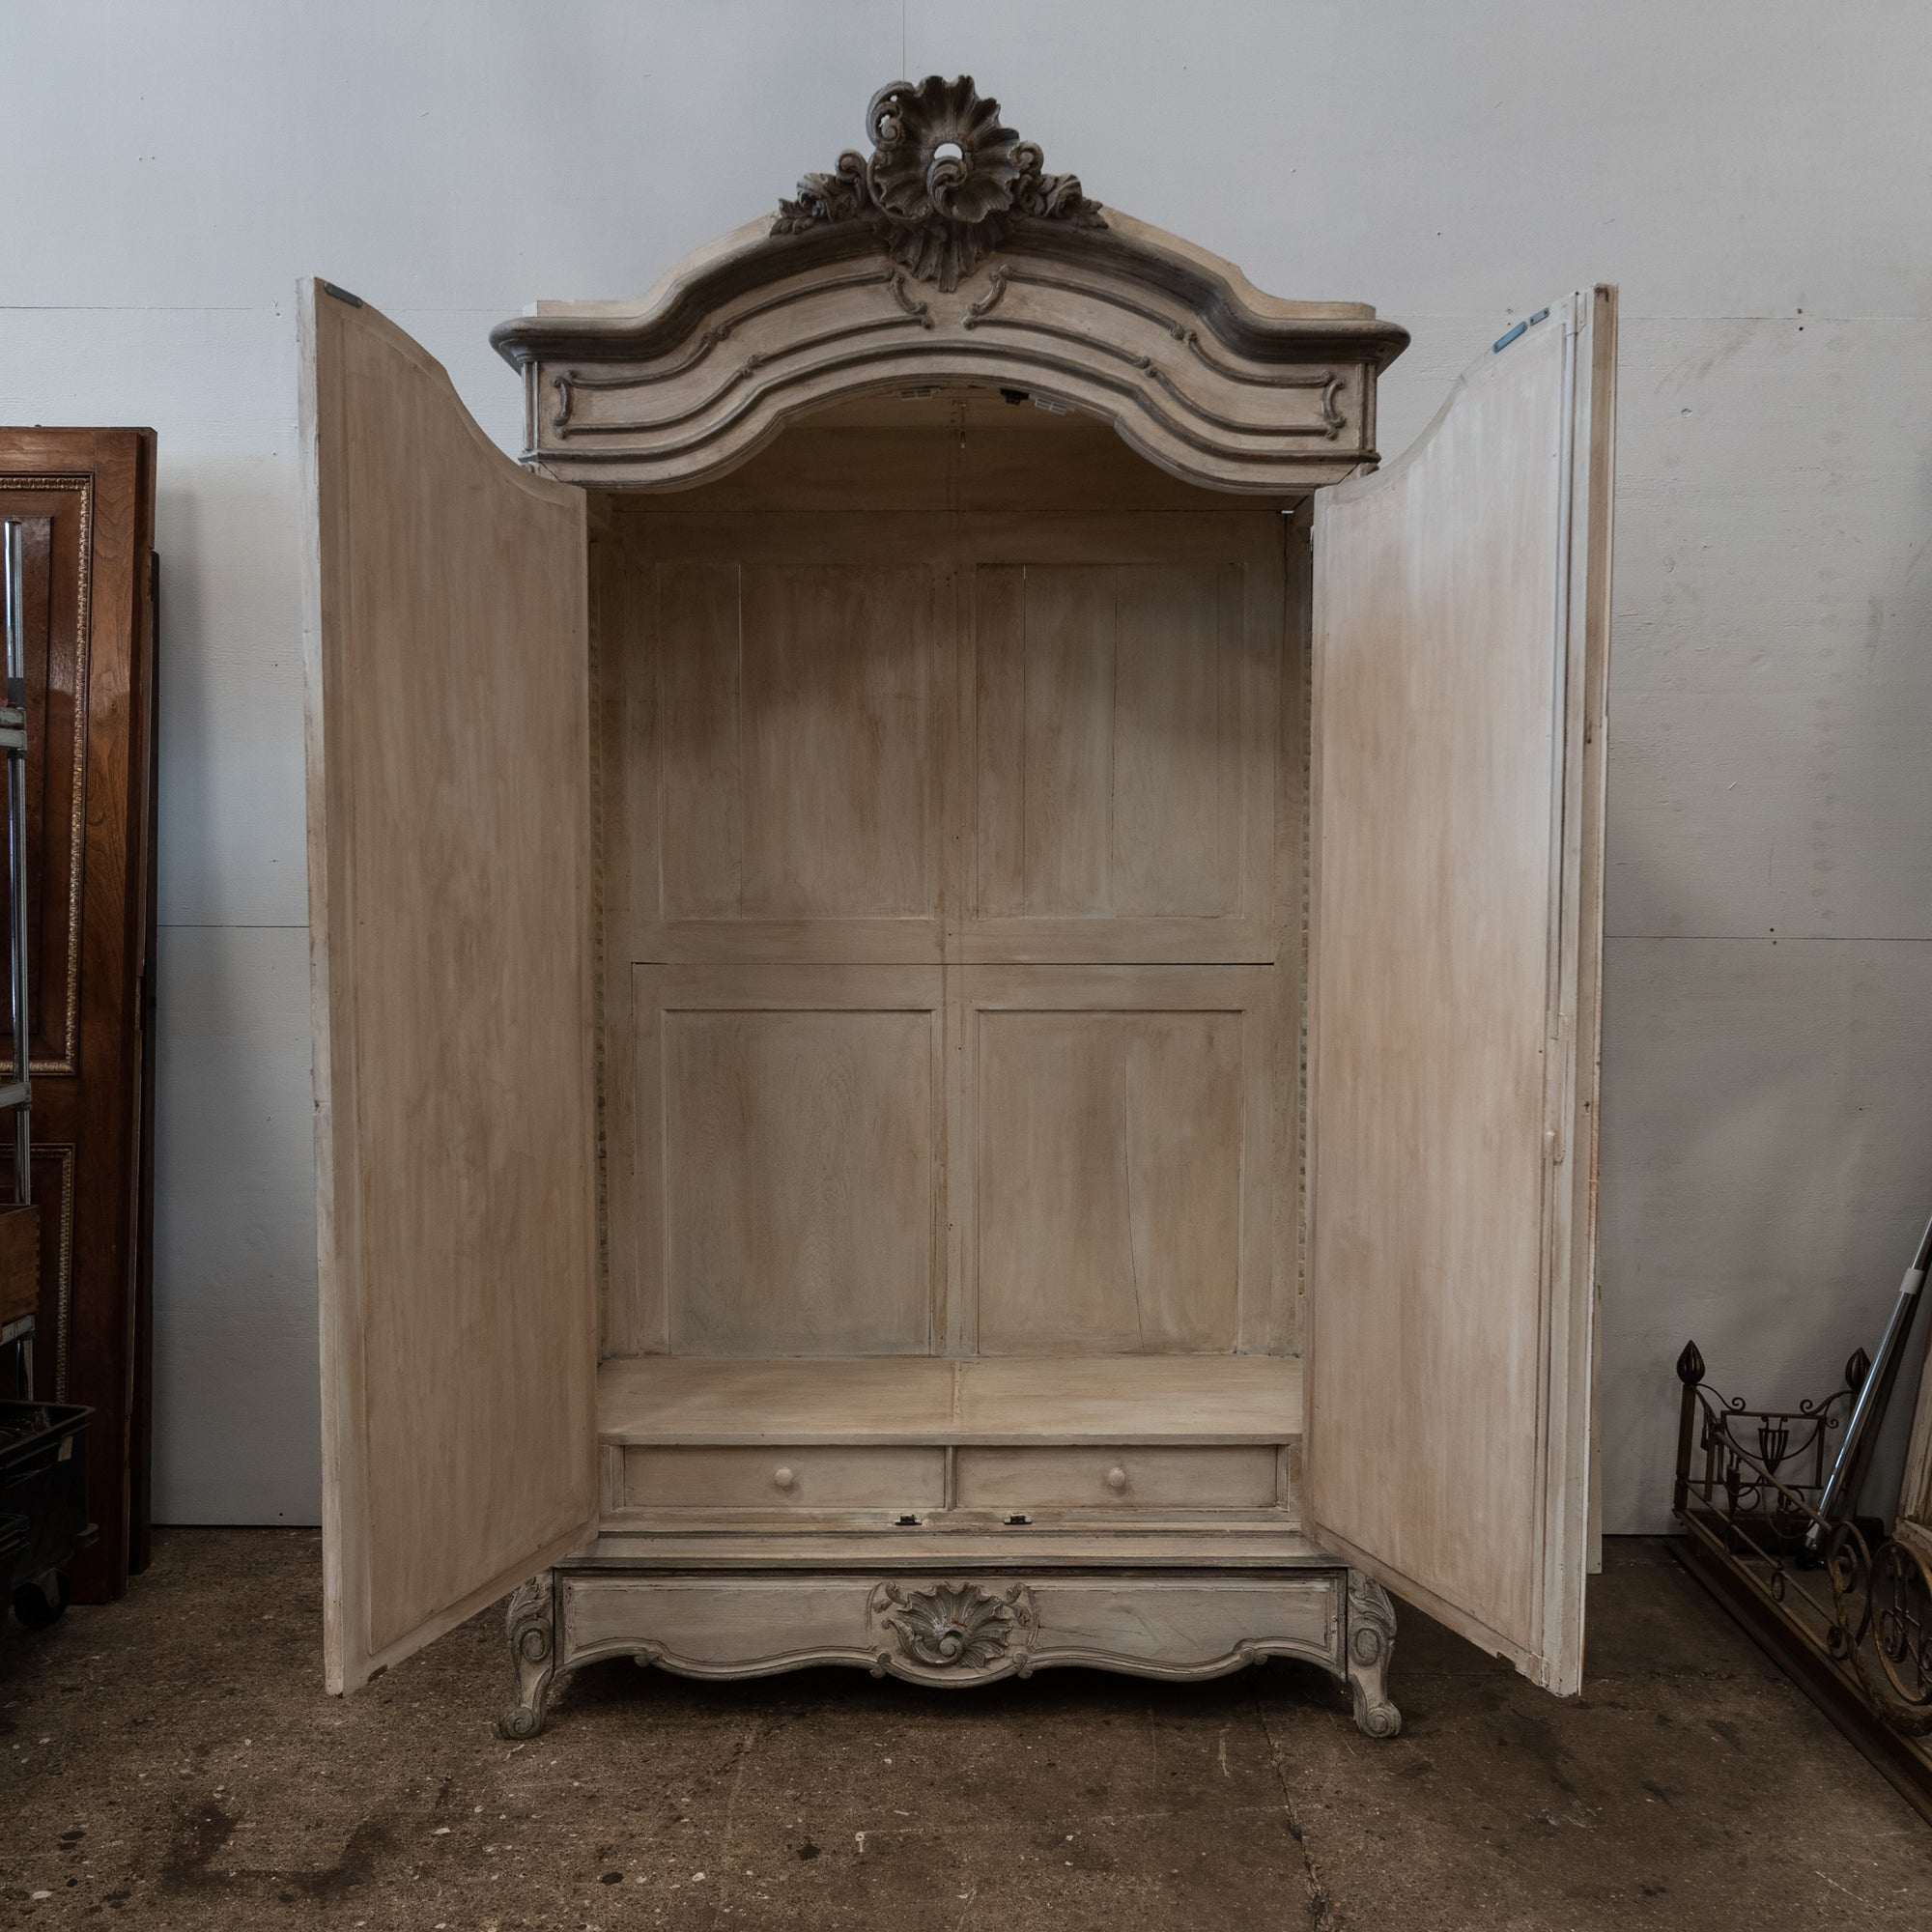 Antique French Carved Oak Louis XV Style Armoire with Mirrored Doors | The Architectural Forum